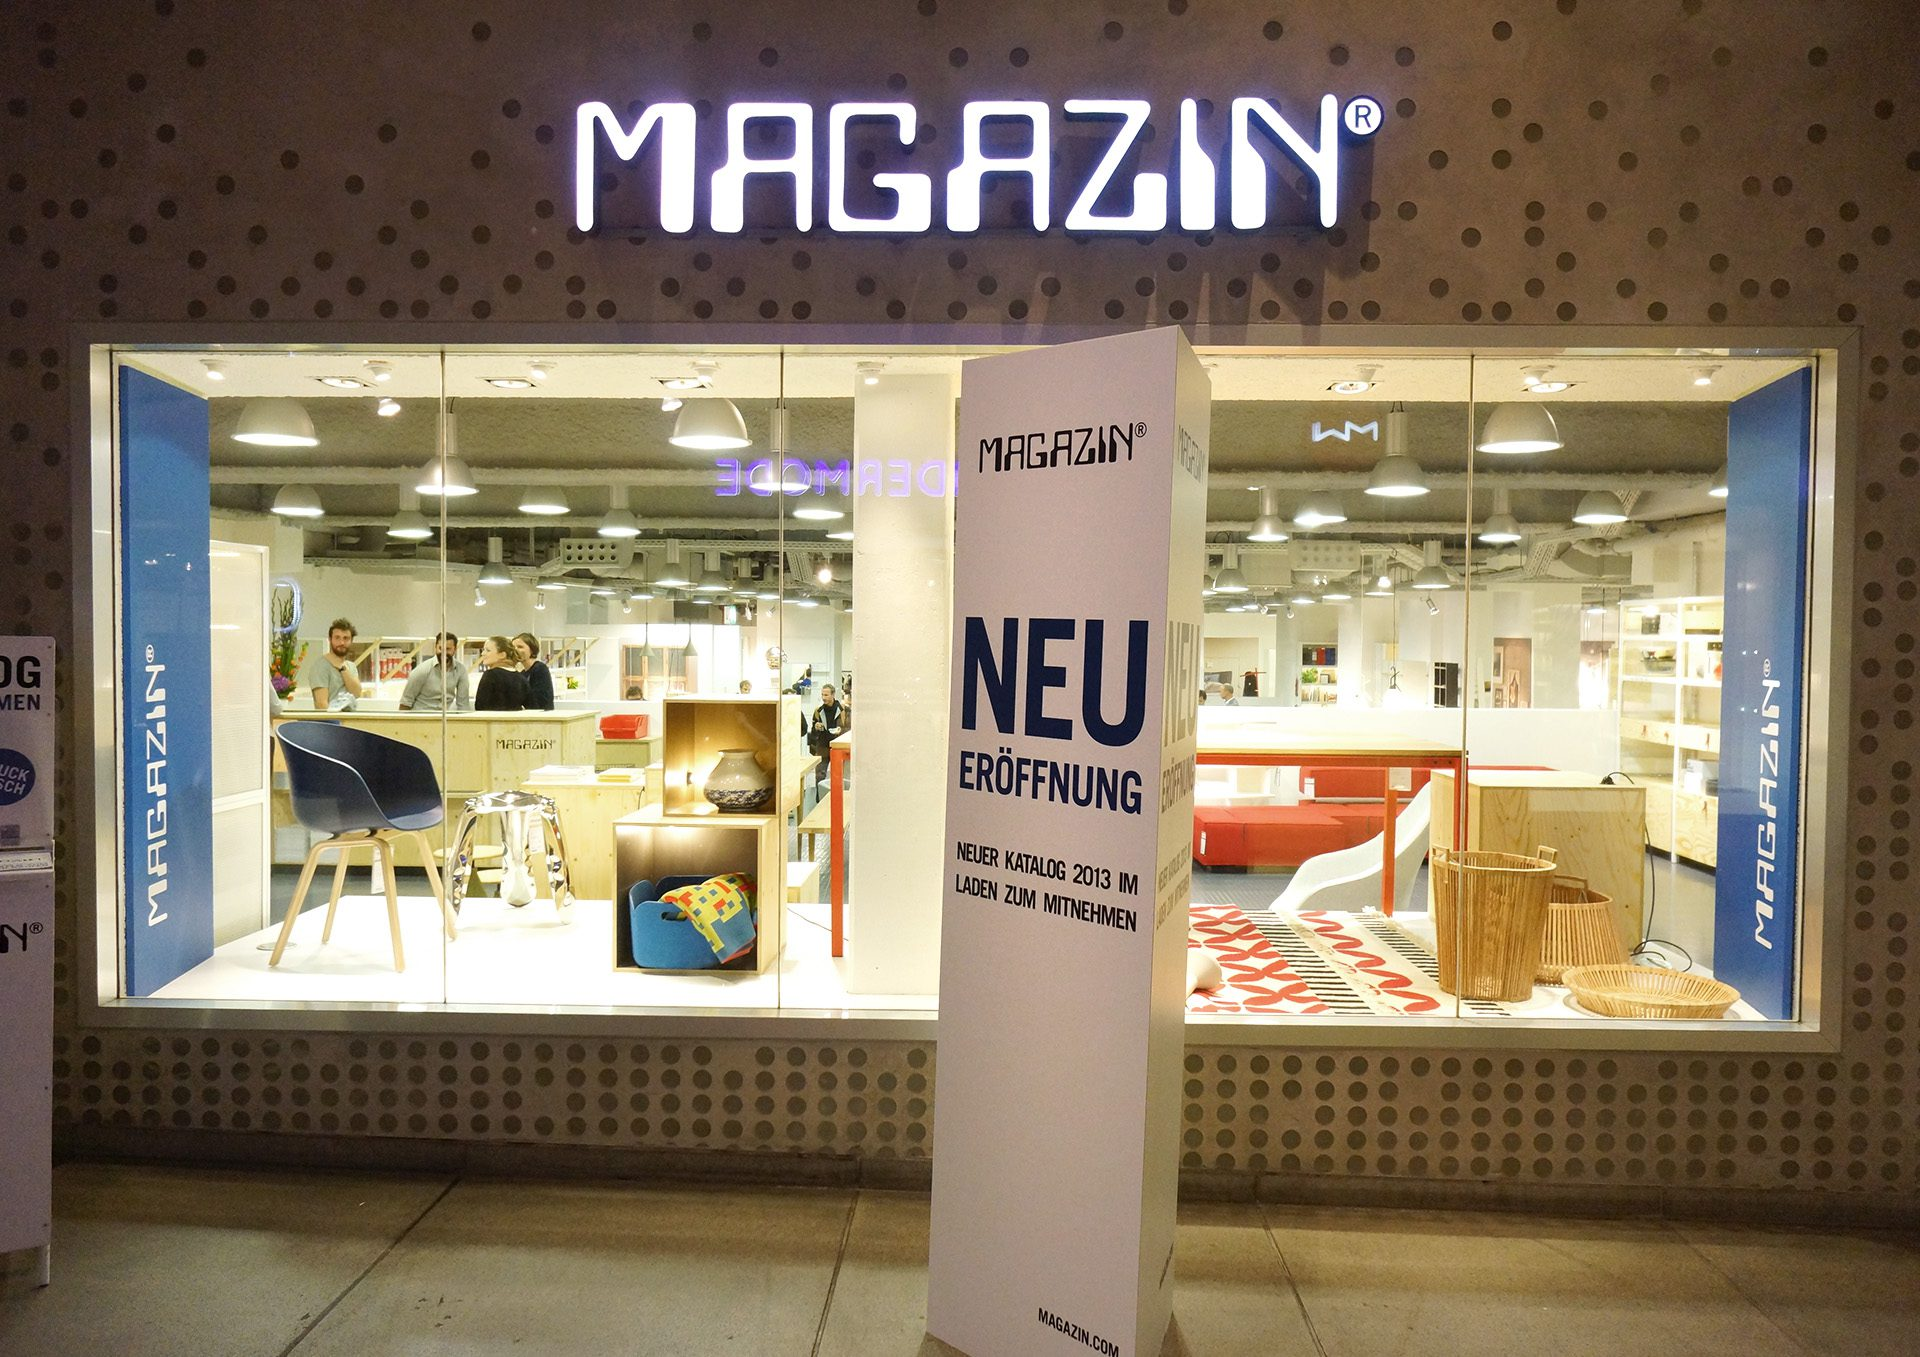 Magazin Multichannel Communication Fotoshooting